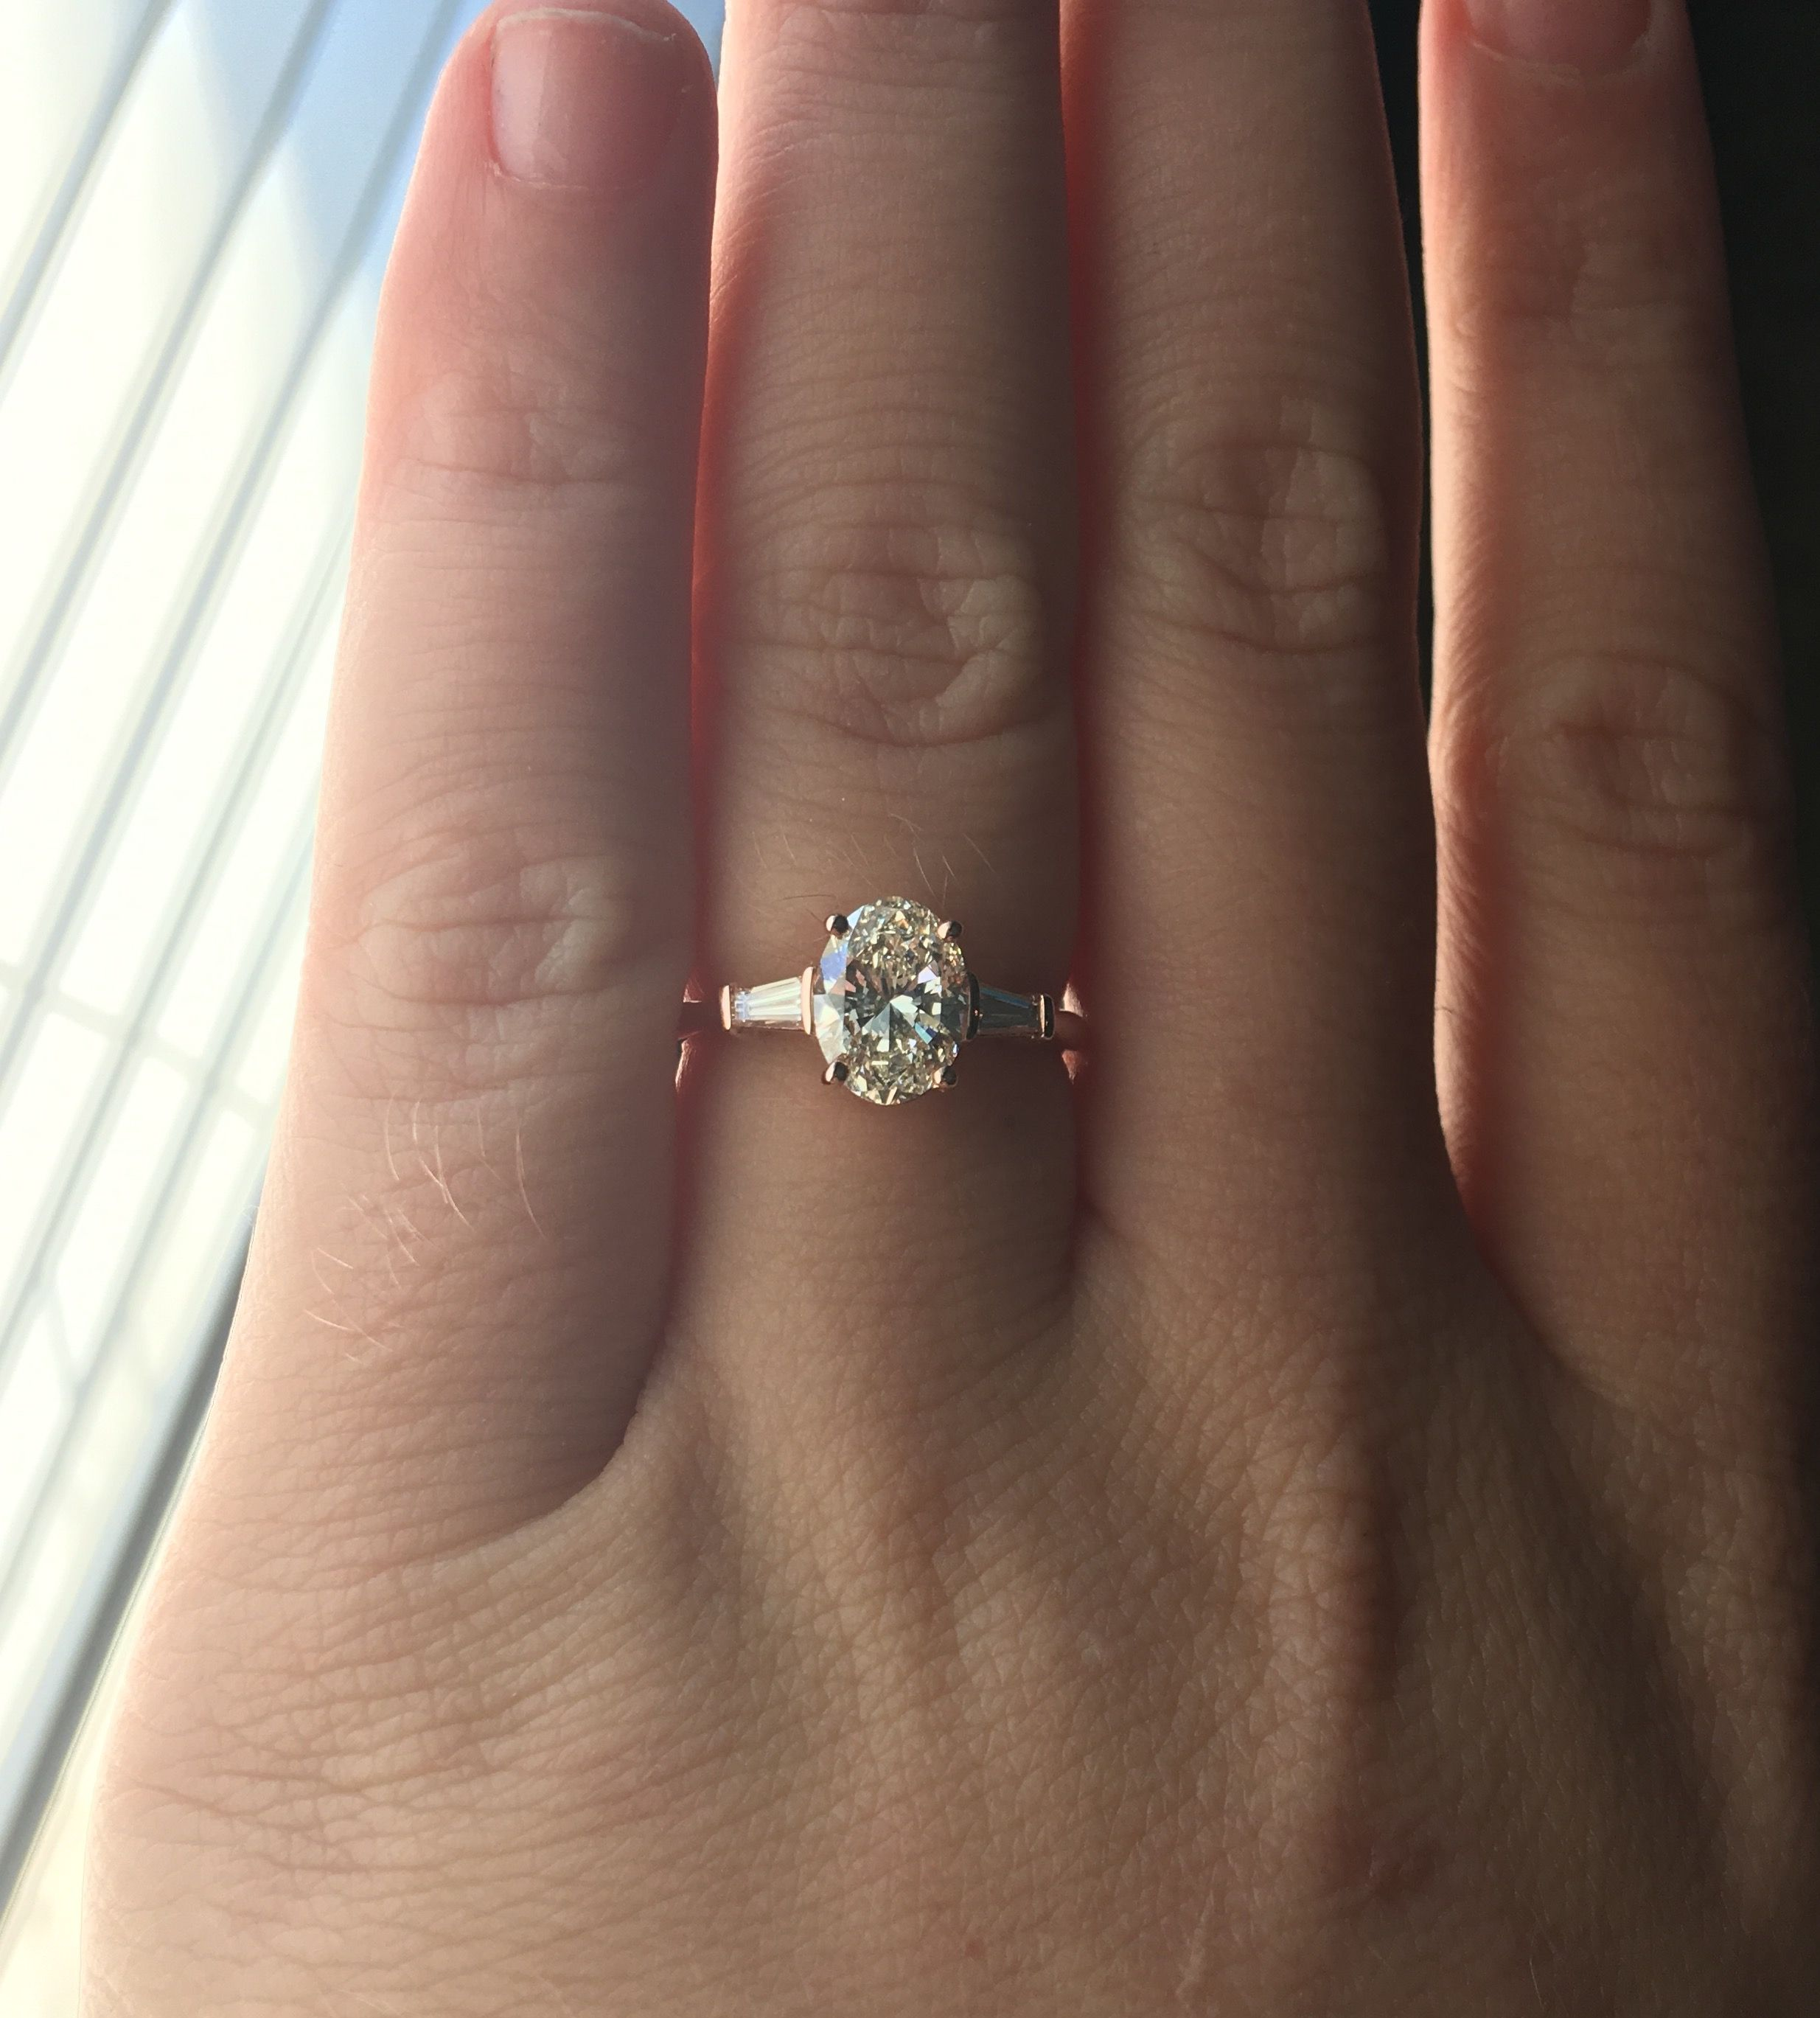 The Ring Rose Gold Oval Engagement Ring 1 75ct K Color Diamond Baguettes Rose Gold Oval Engagement Ring Classic Engagement Rings Gold Oval Engagement Ring